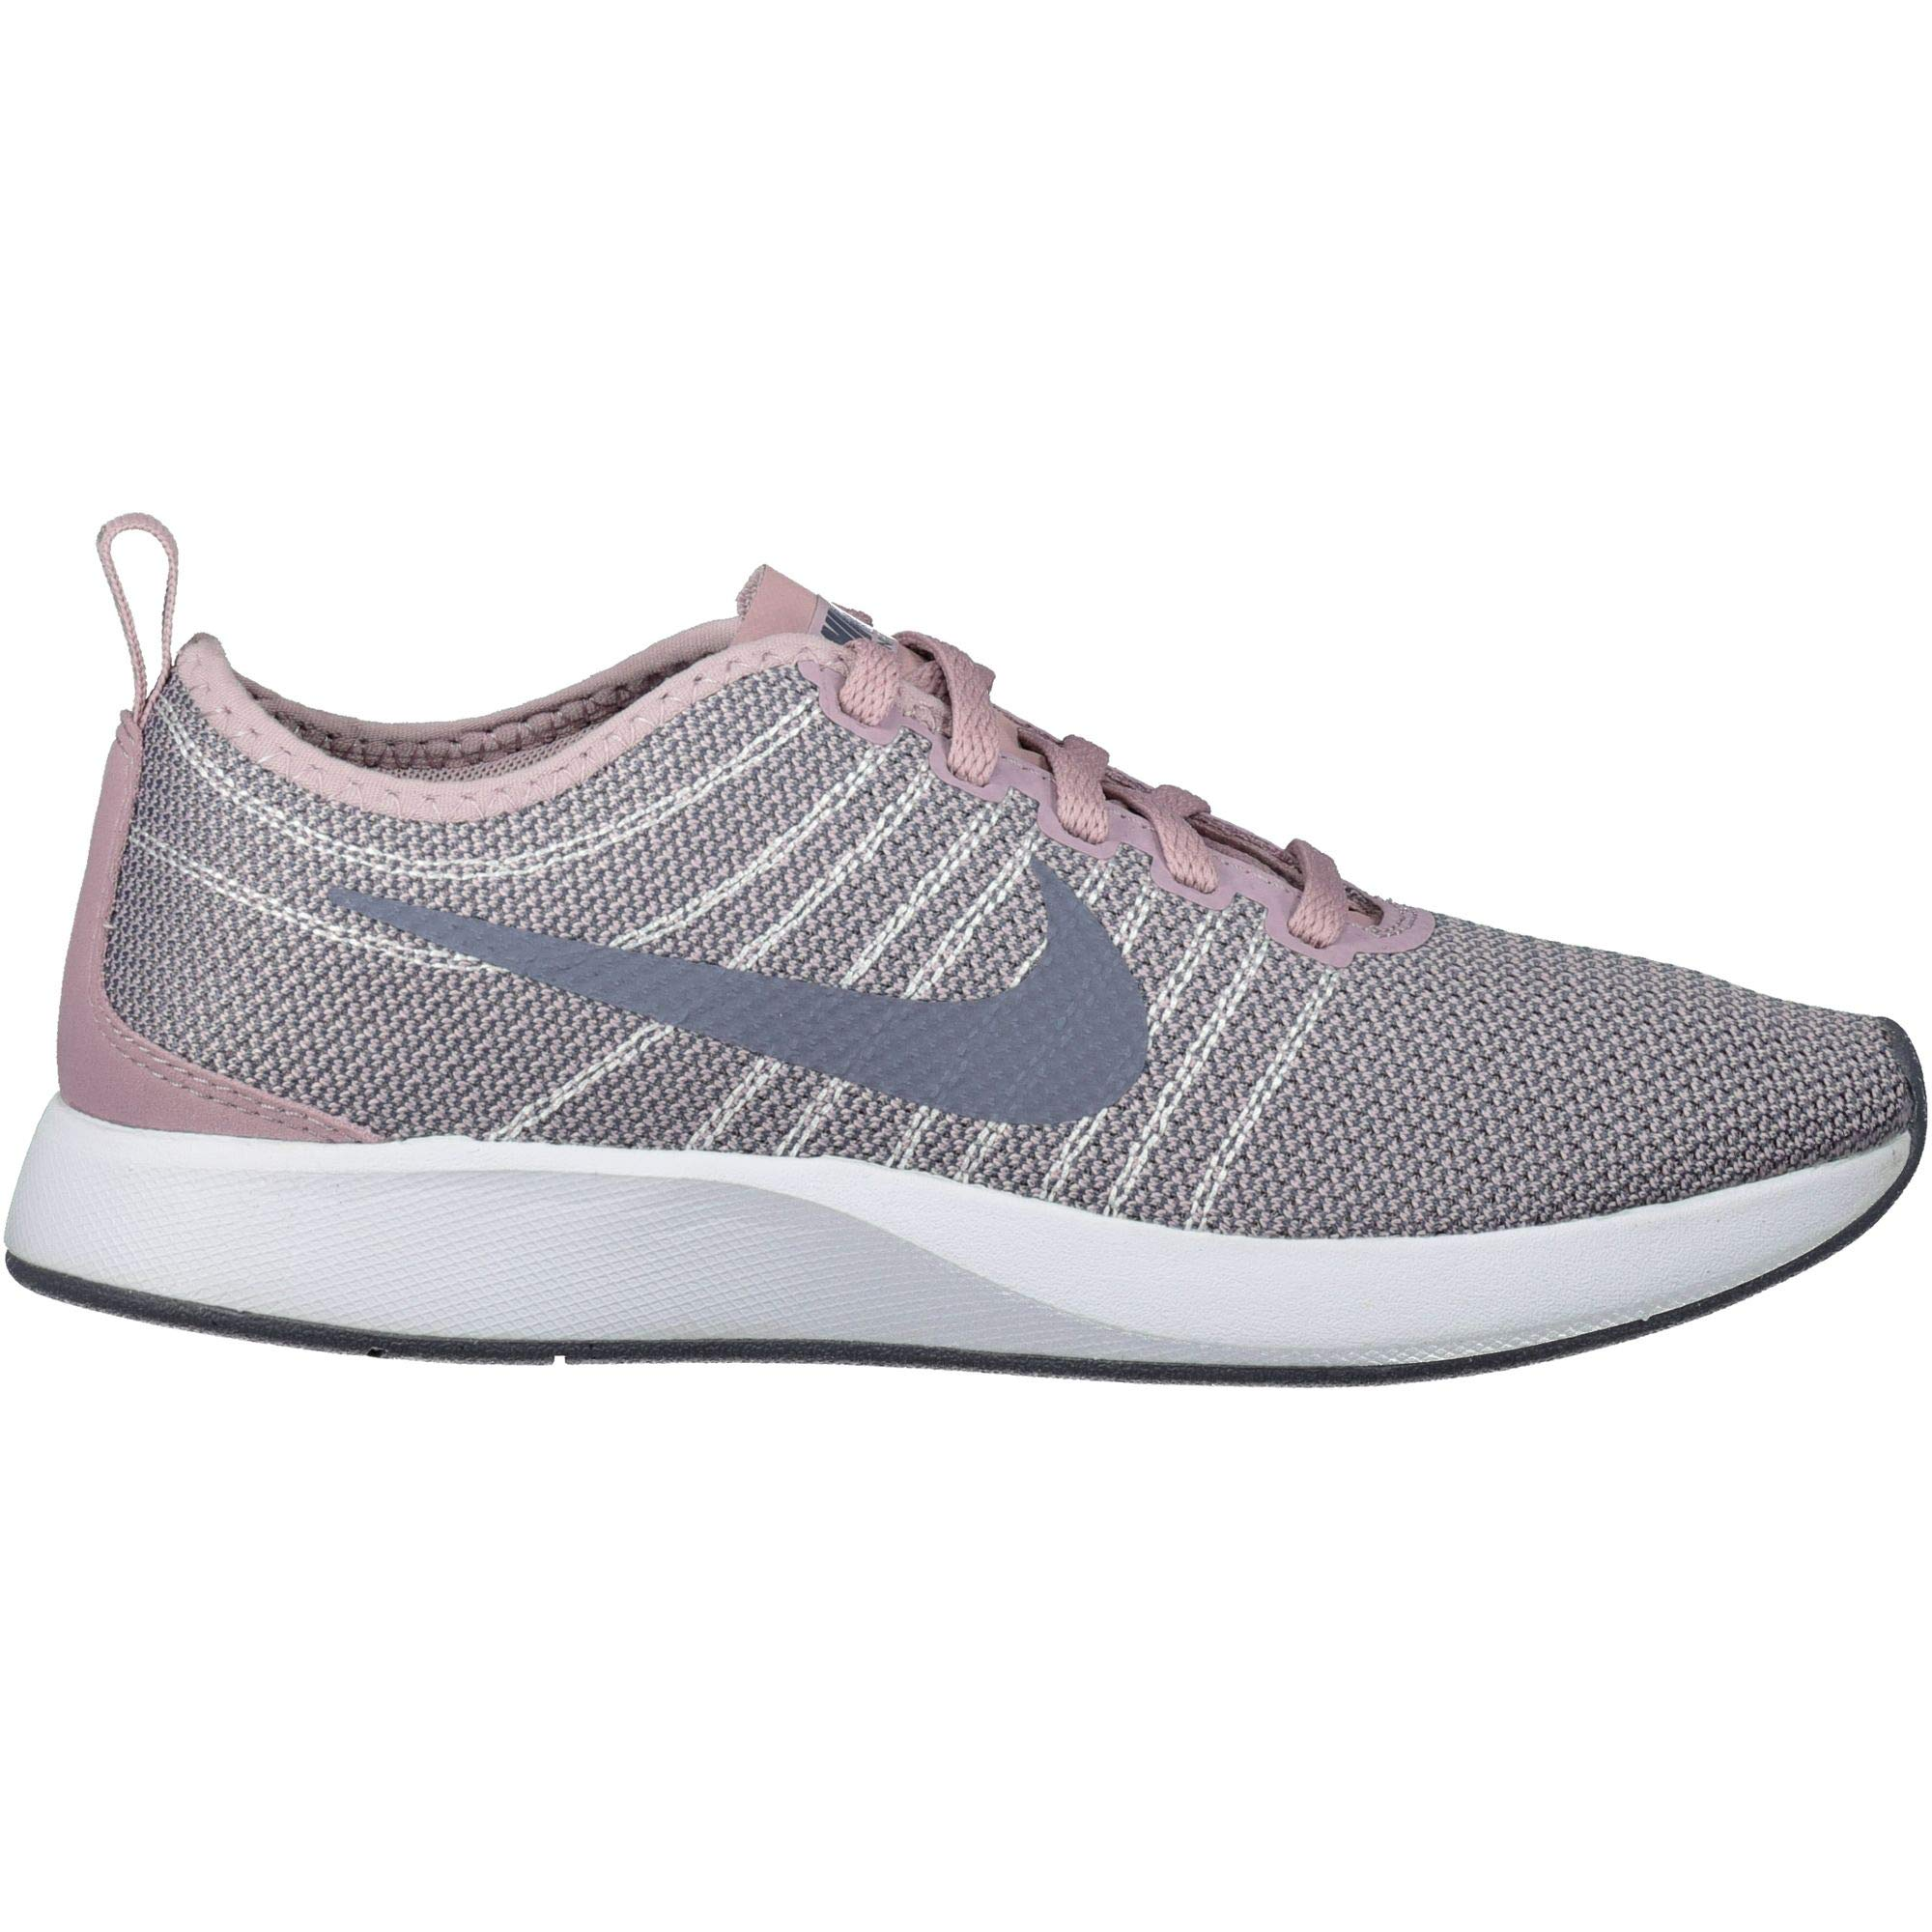 47400e9ca53 Galleon - Nike Women s Dualtone Racer Elemental Rose Light Carbon Running  Shoe 9 Women US